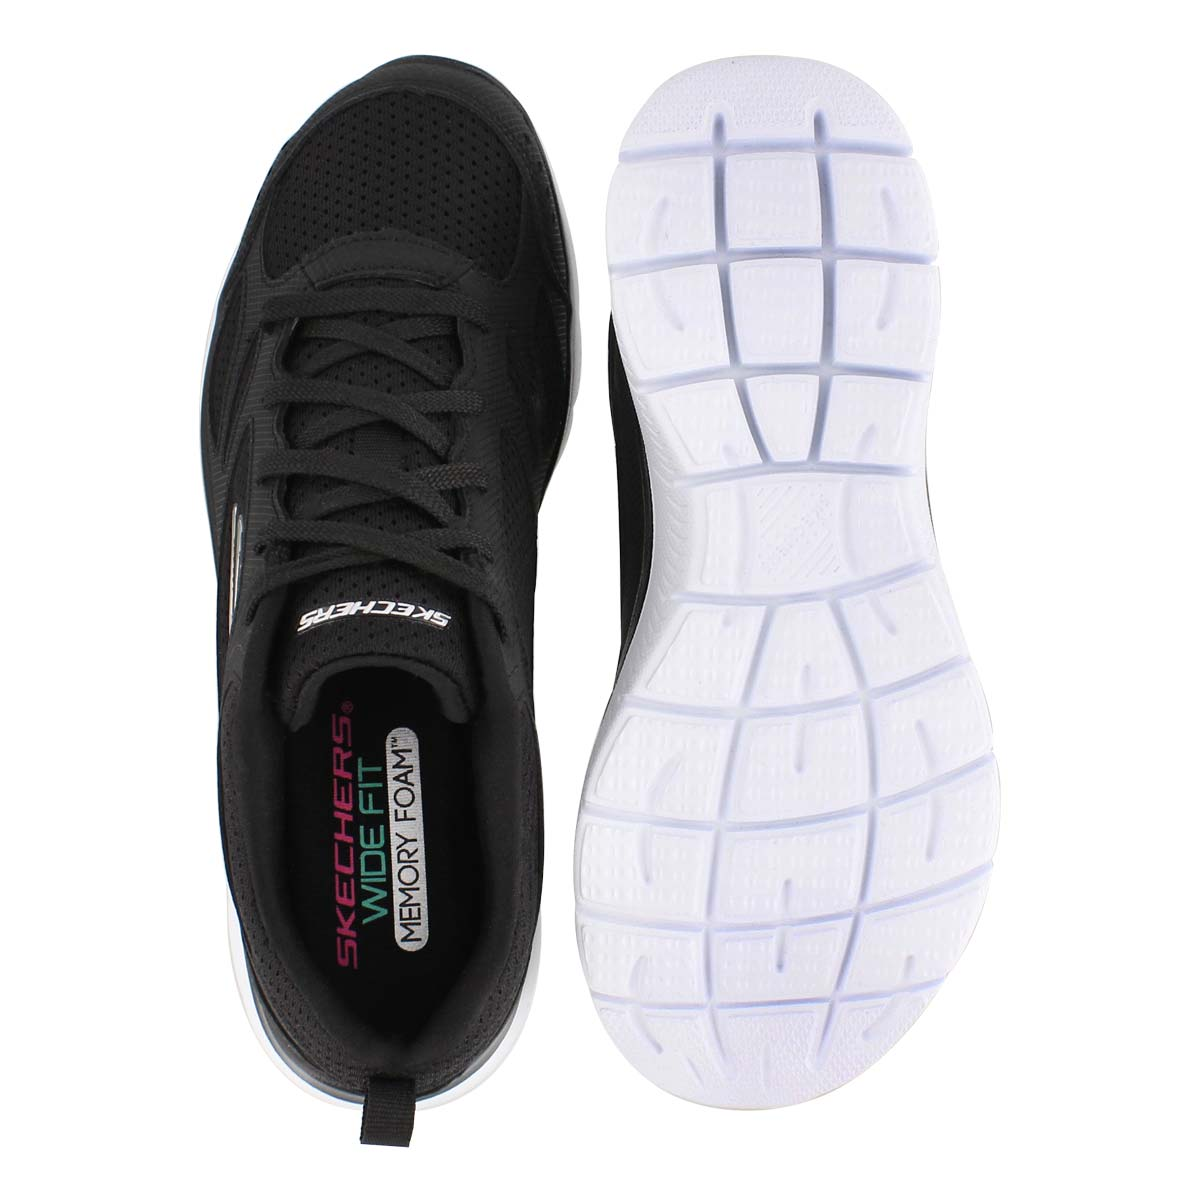 Lds Summits Suited blk/wht sneaker- wide